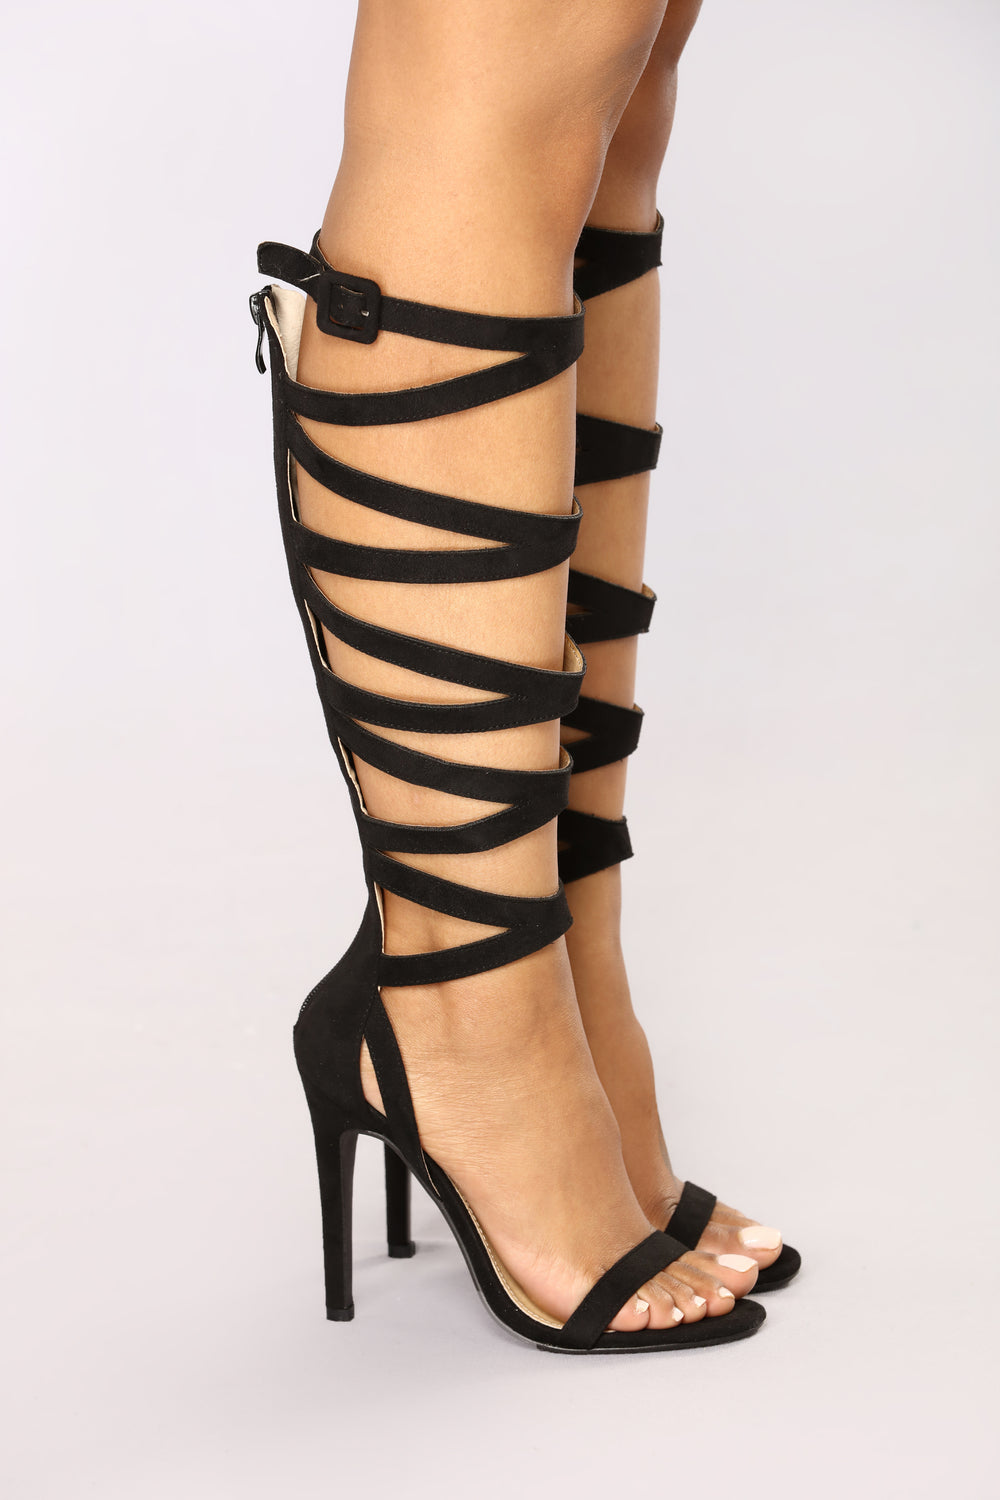 The Zone Knee High Strappy Heel - Black